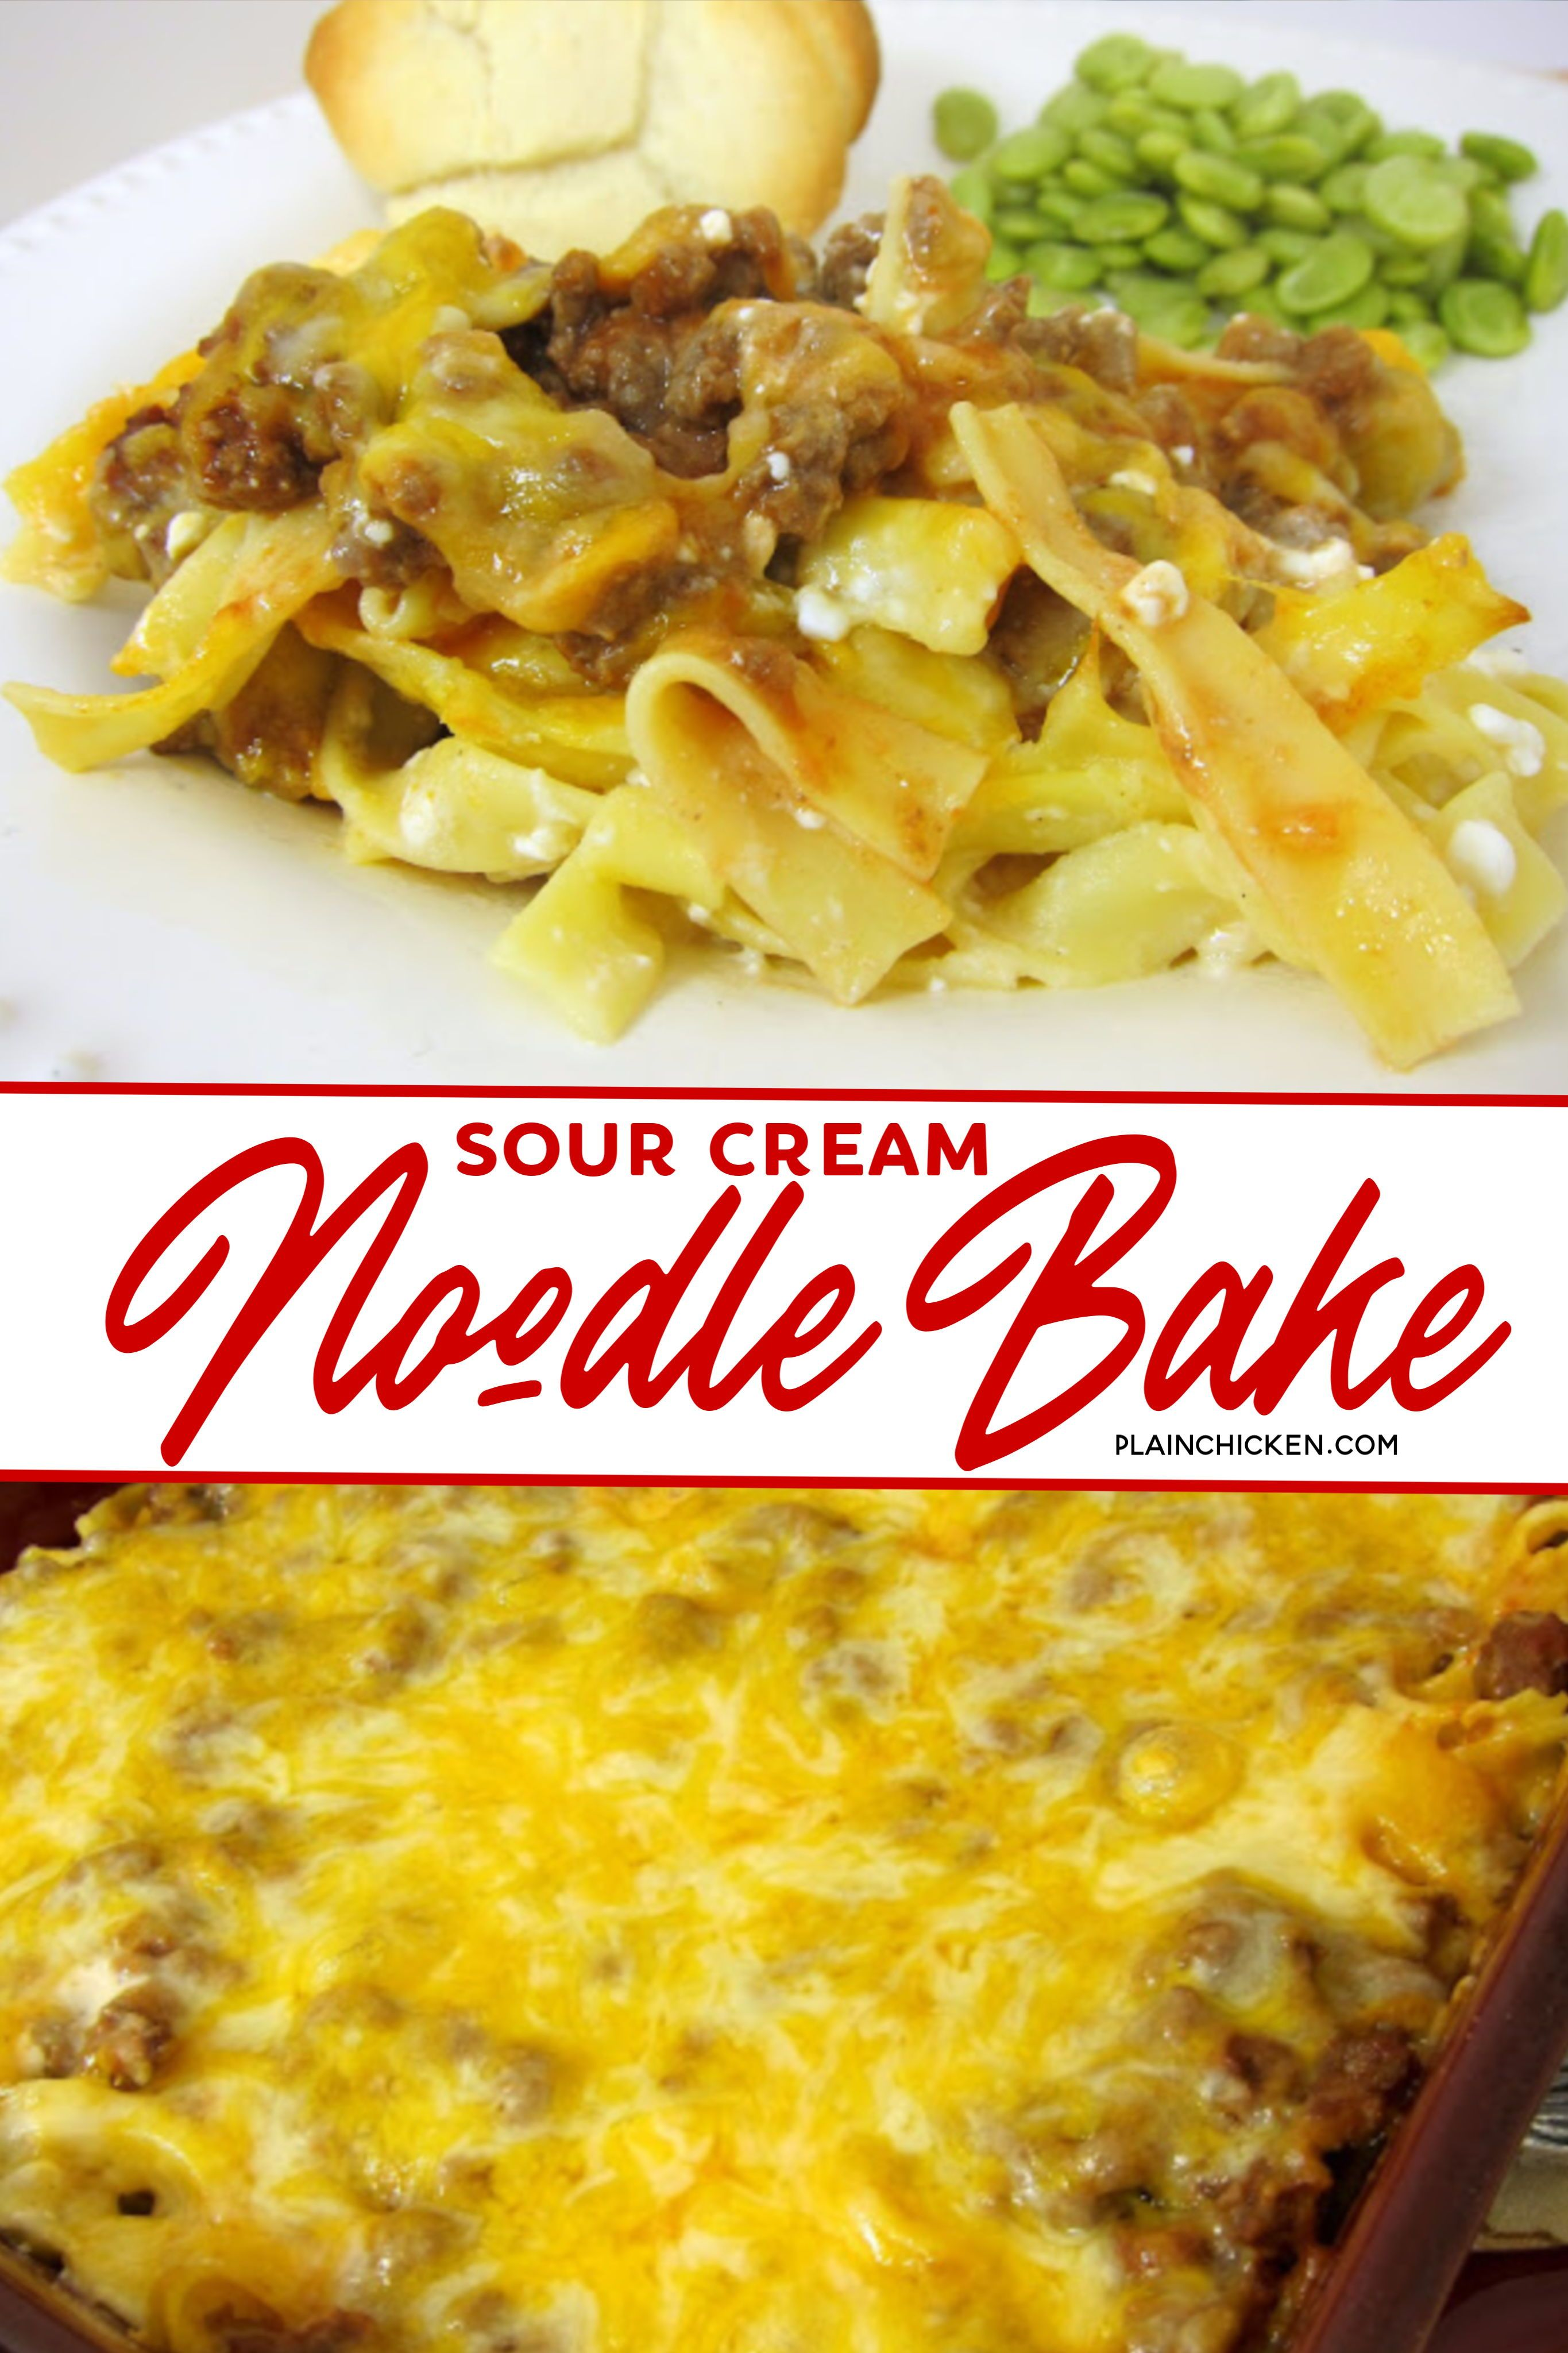 Sour Cream Noodle Bake In 2020 Sour Cream Noodle Bake Sour Cream Cheese Sour Cream